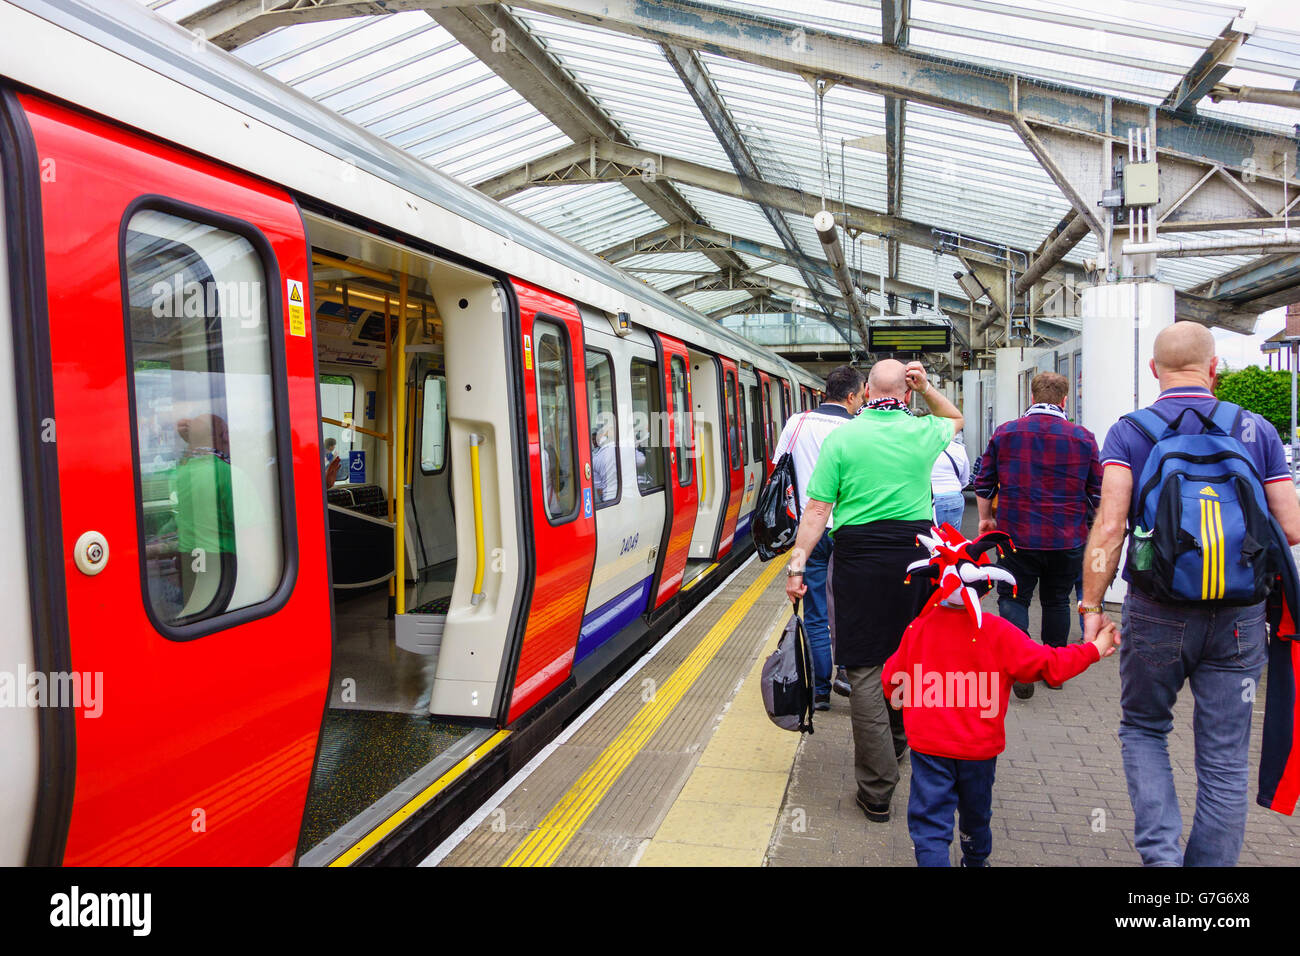 Passengers disembarking the tube at Wembley Park Middlesex - Stock Image